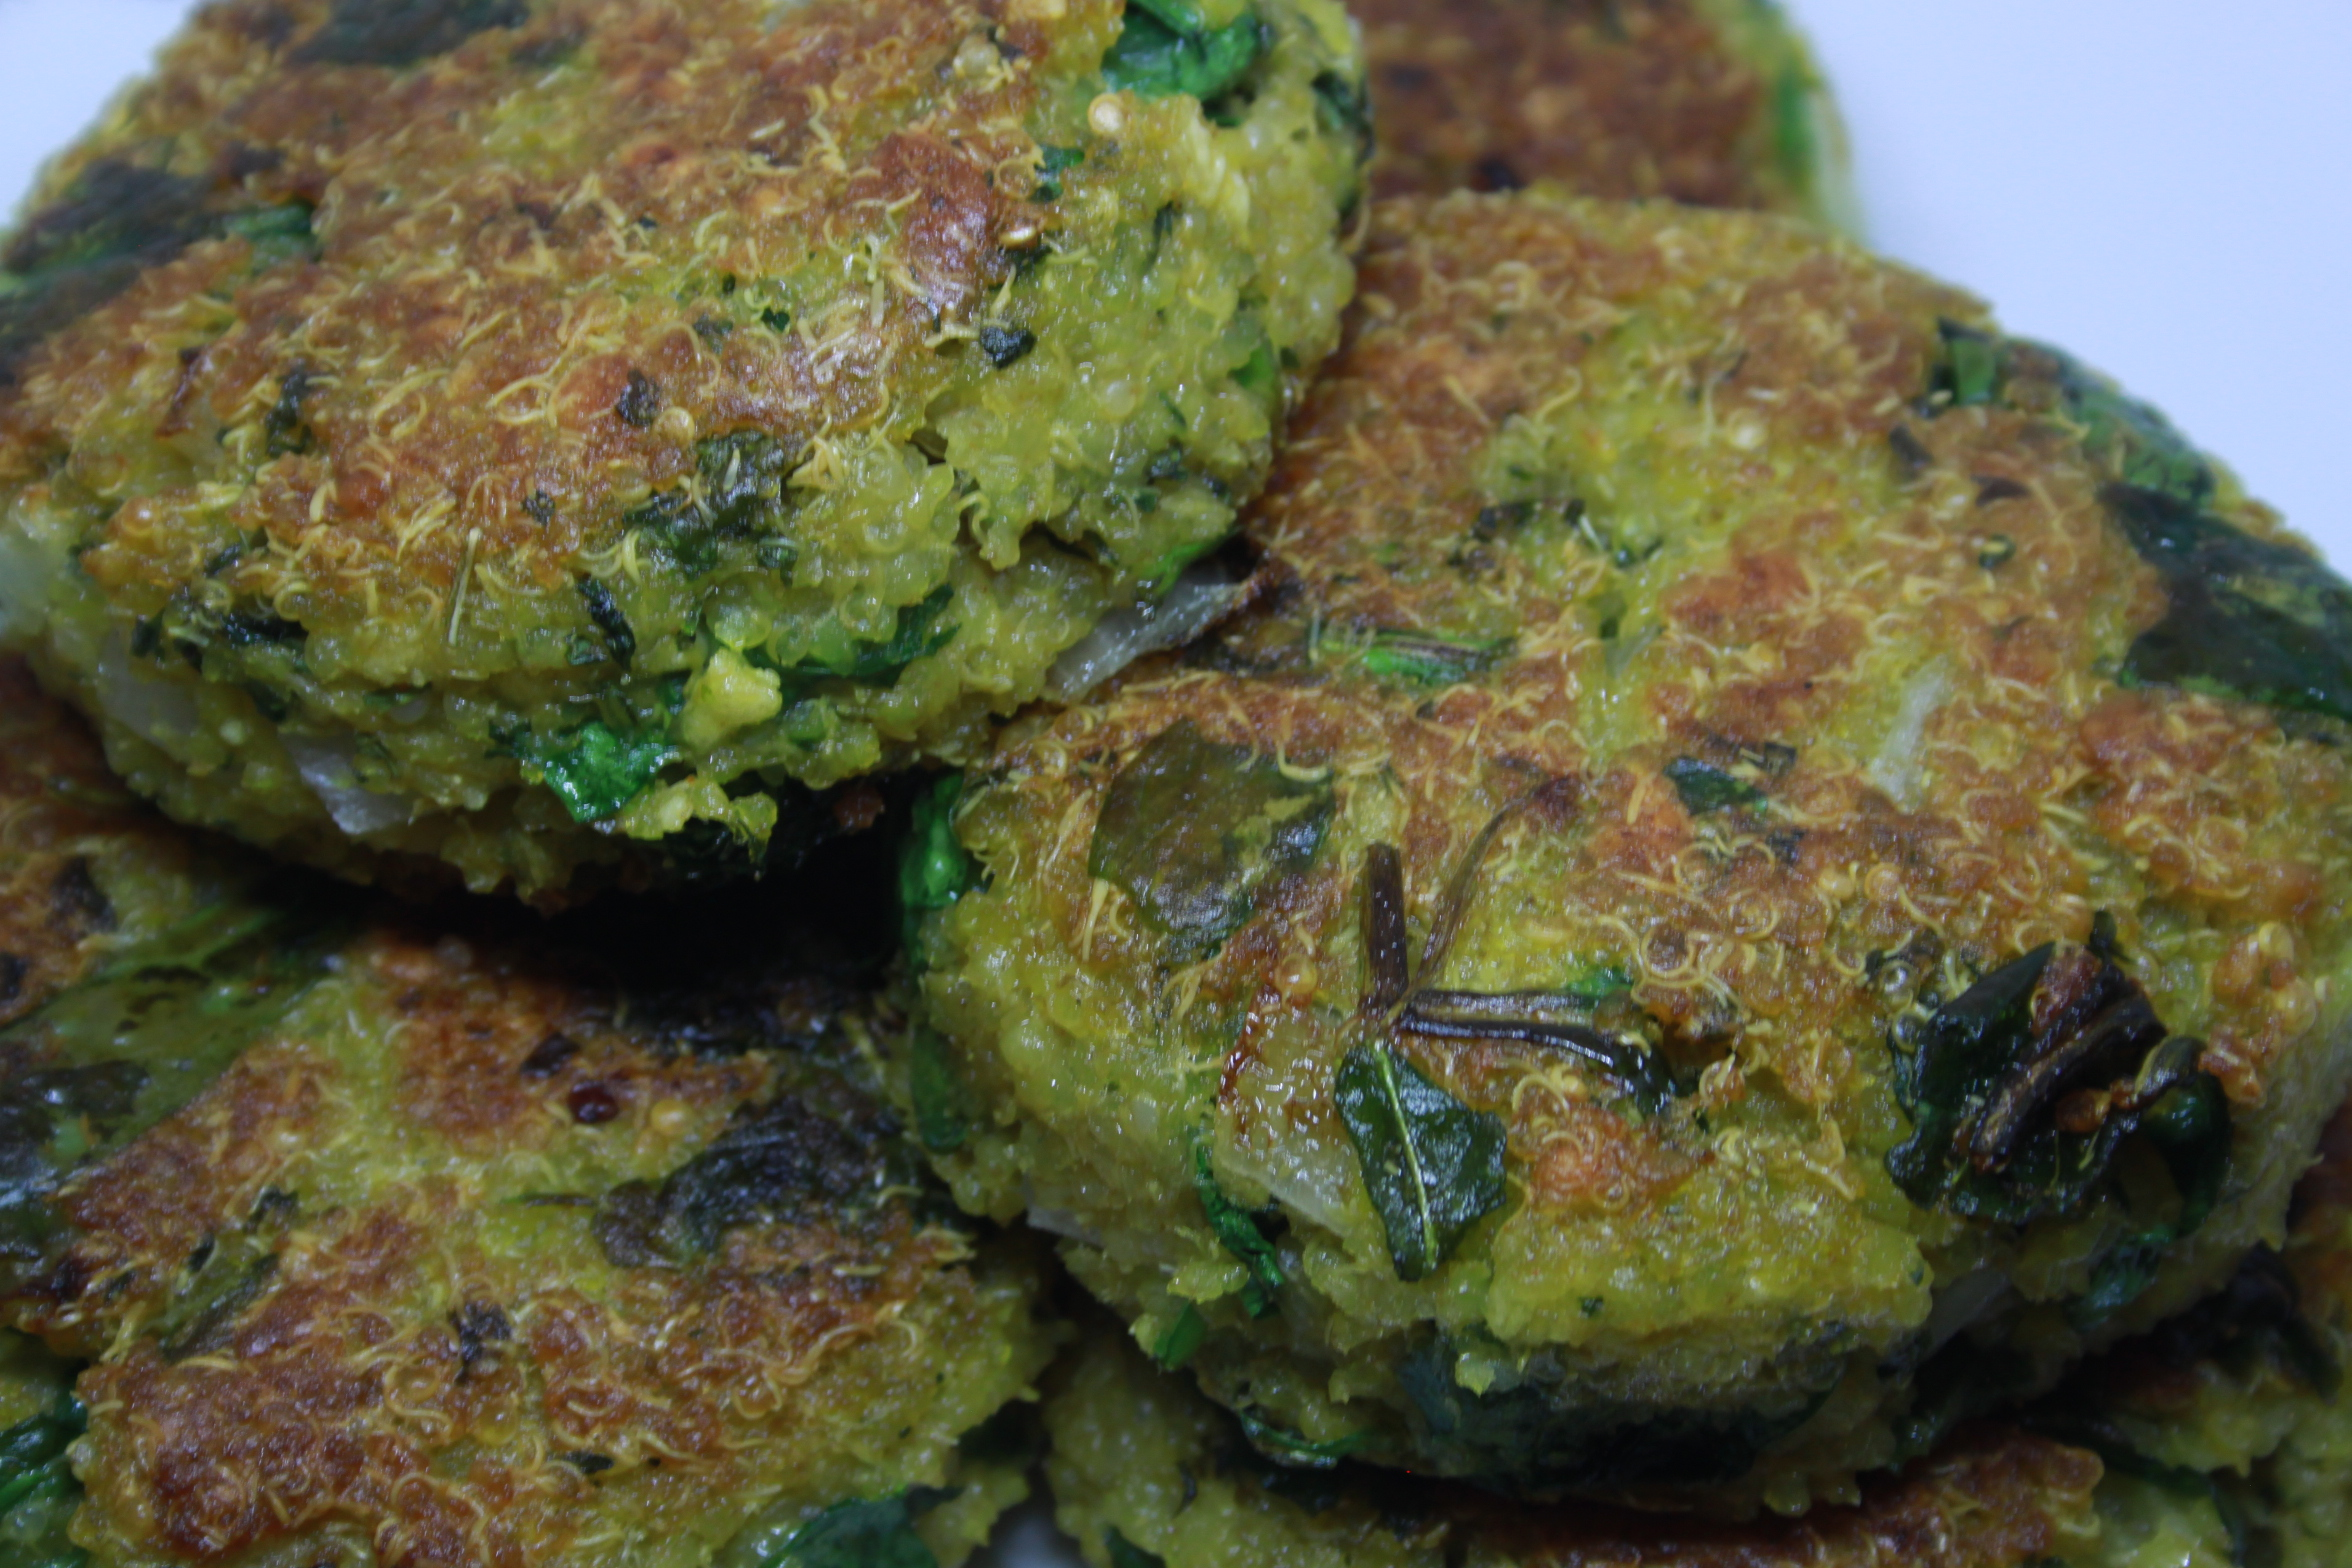 Quinoa Cakes - $10 (3) - Plant-based versions of crab cakes!Ingredients: Quinoa, Spinach, Onion, Gluten Free Bread Crumbs, Egg Replacer, Salt, Garlic and Onion Powder, Grapeseed Oil